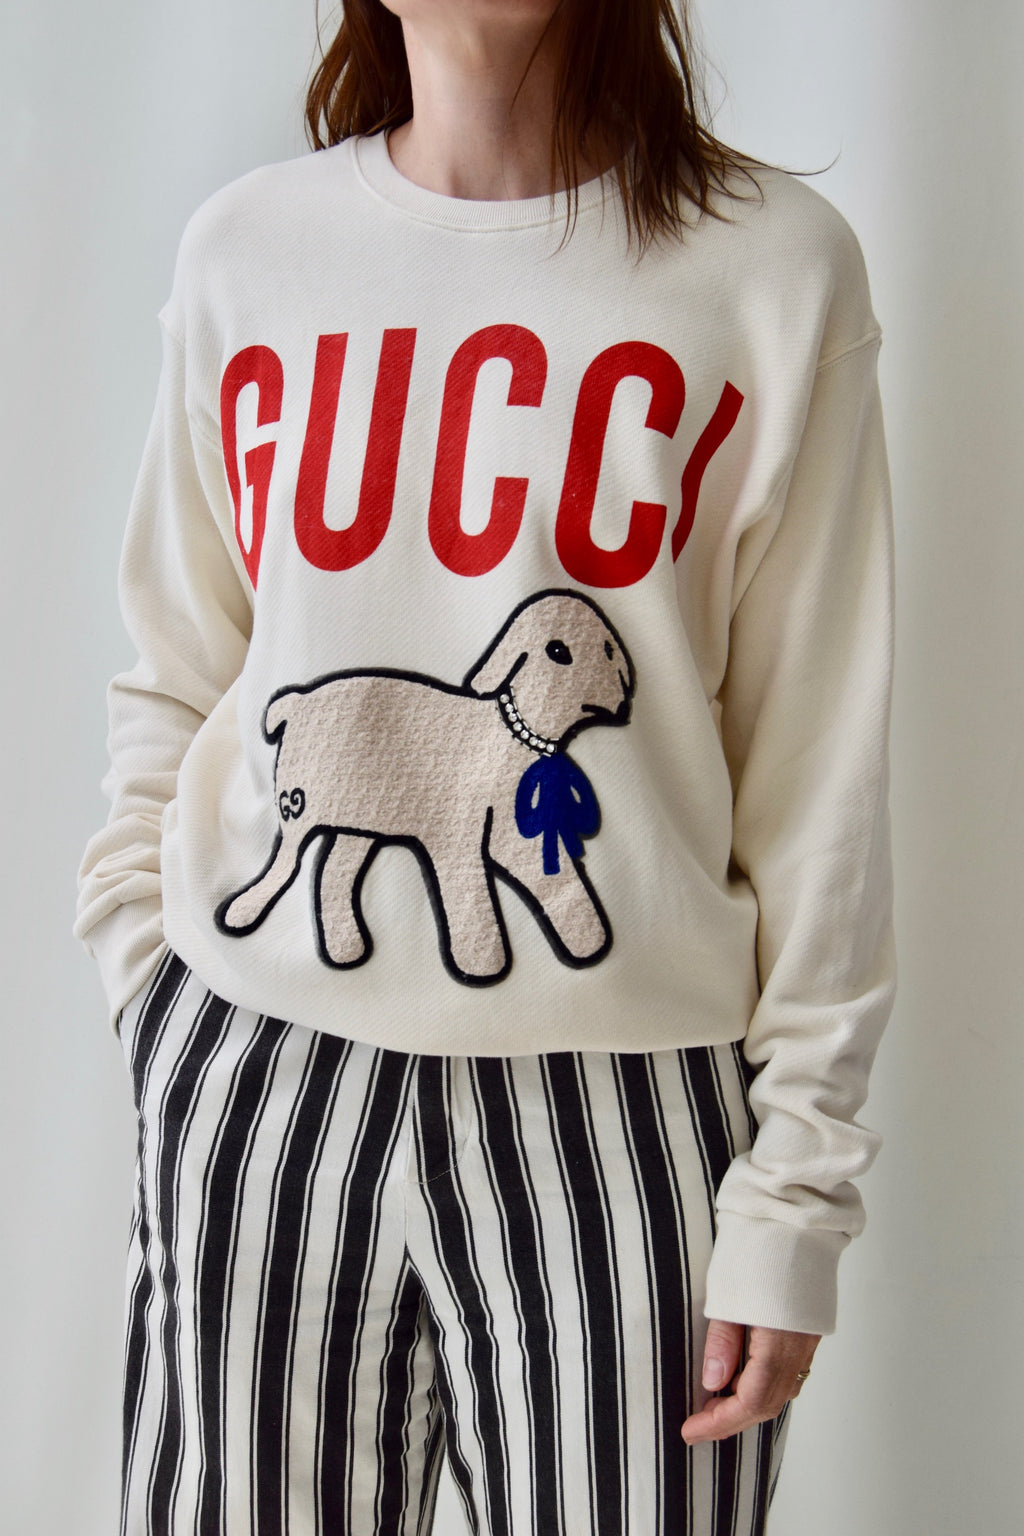 Gucci Sweatshirt With Lamb Applique